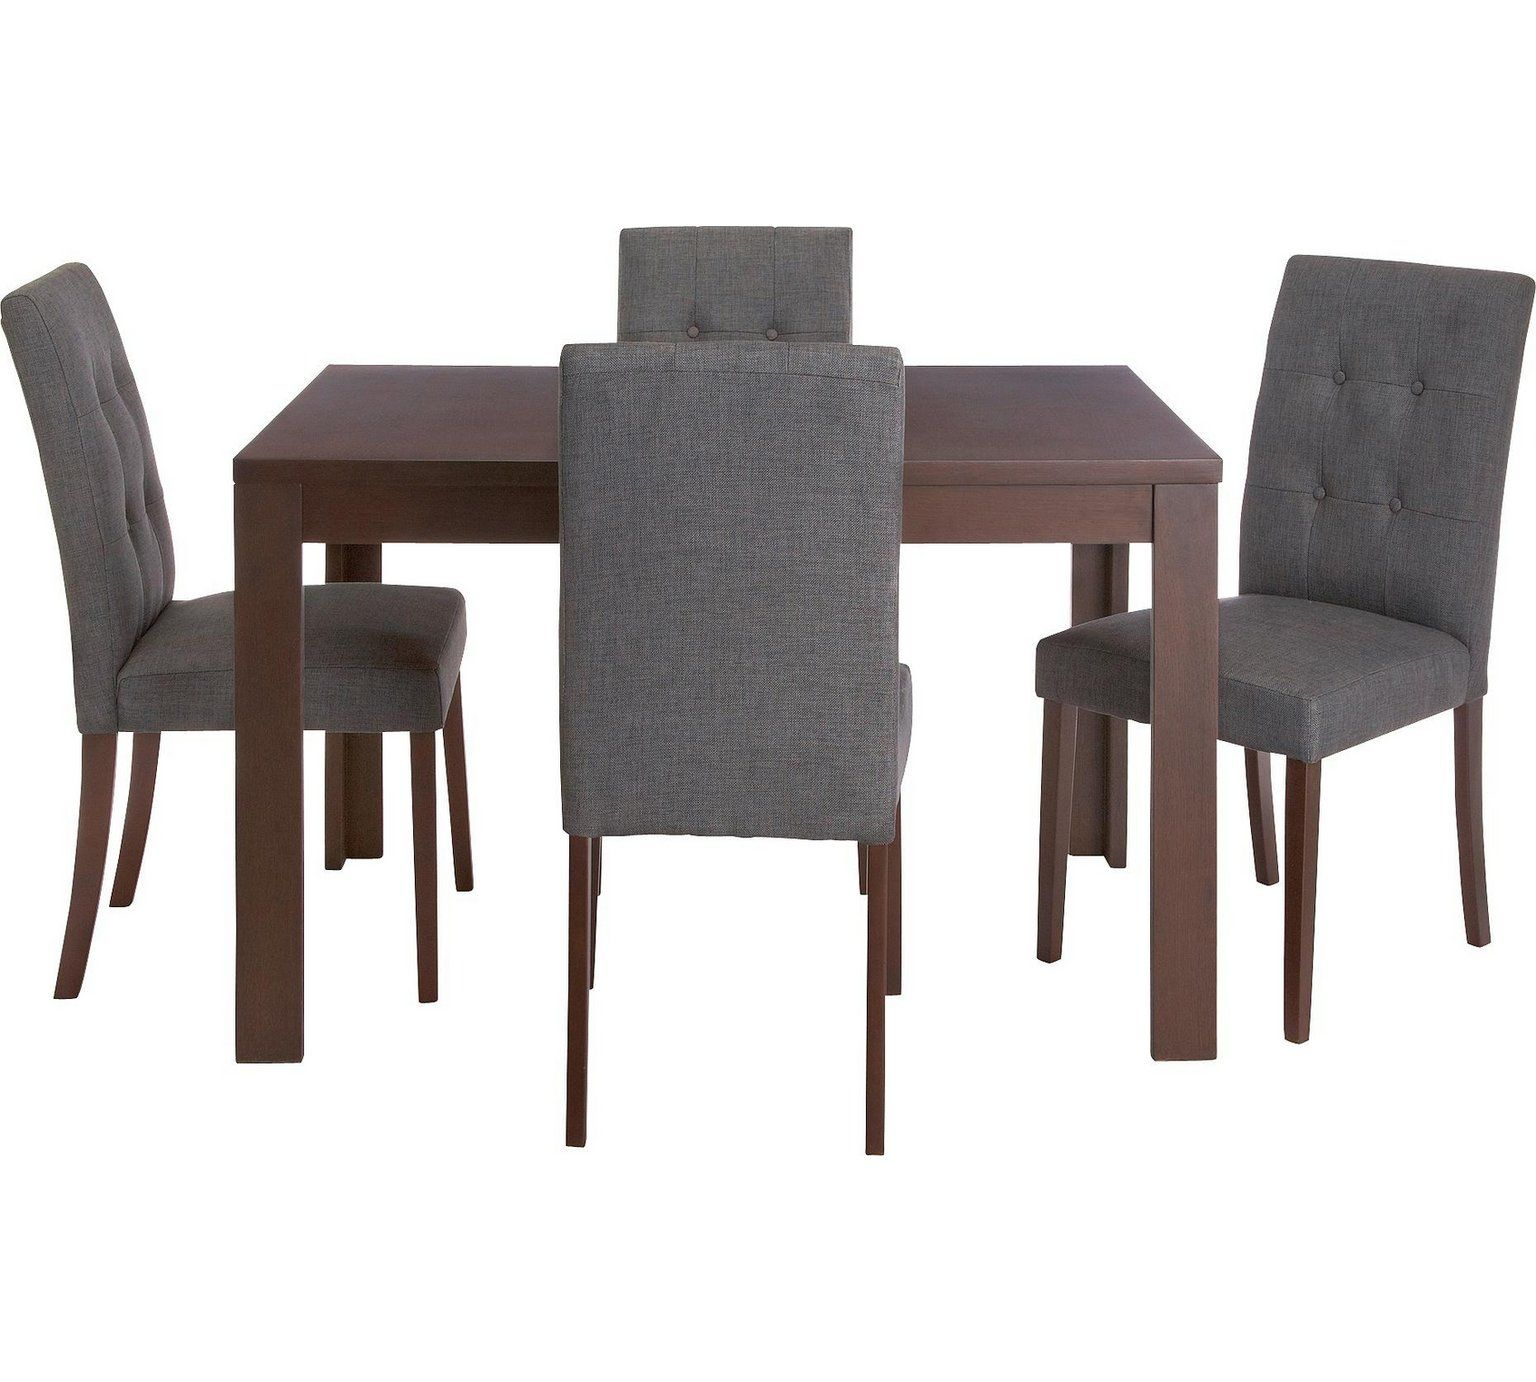 Buy Collection Adaline Ext Dining Table 4 Chairs Walnut Stain At Argos Co Uk Your Online Shop For Dining Sets Dinin Dining Room Furniture Dining Furniture